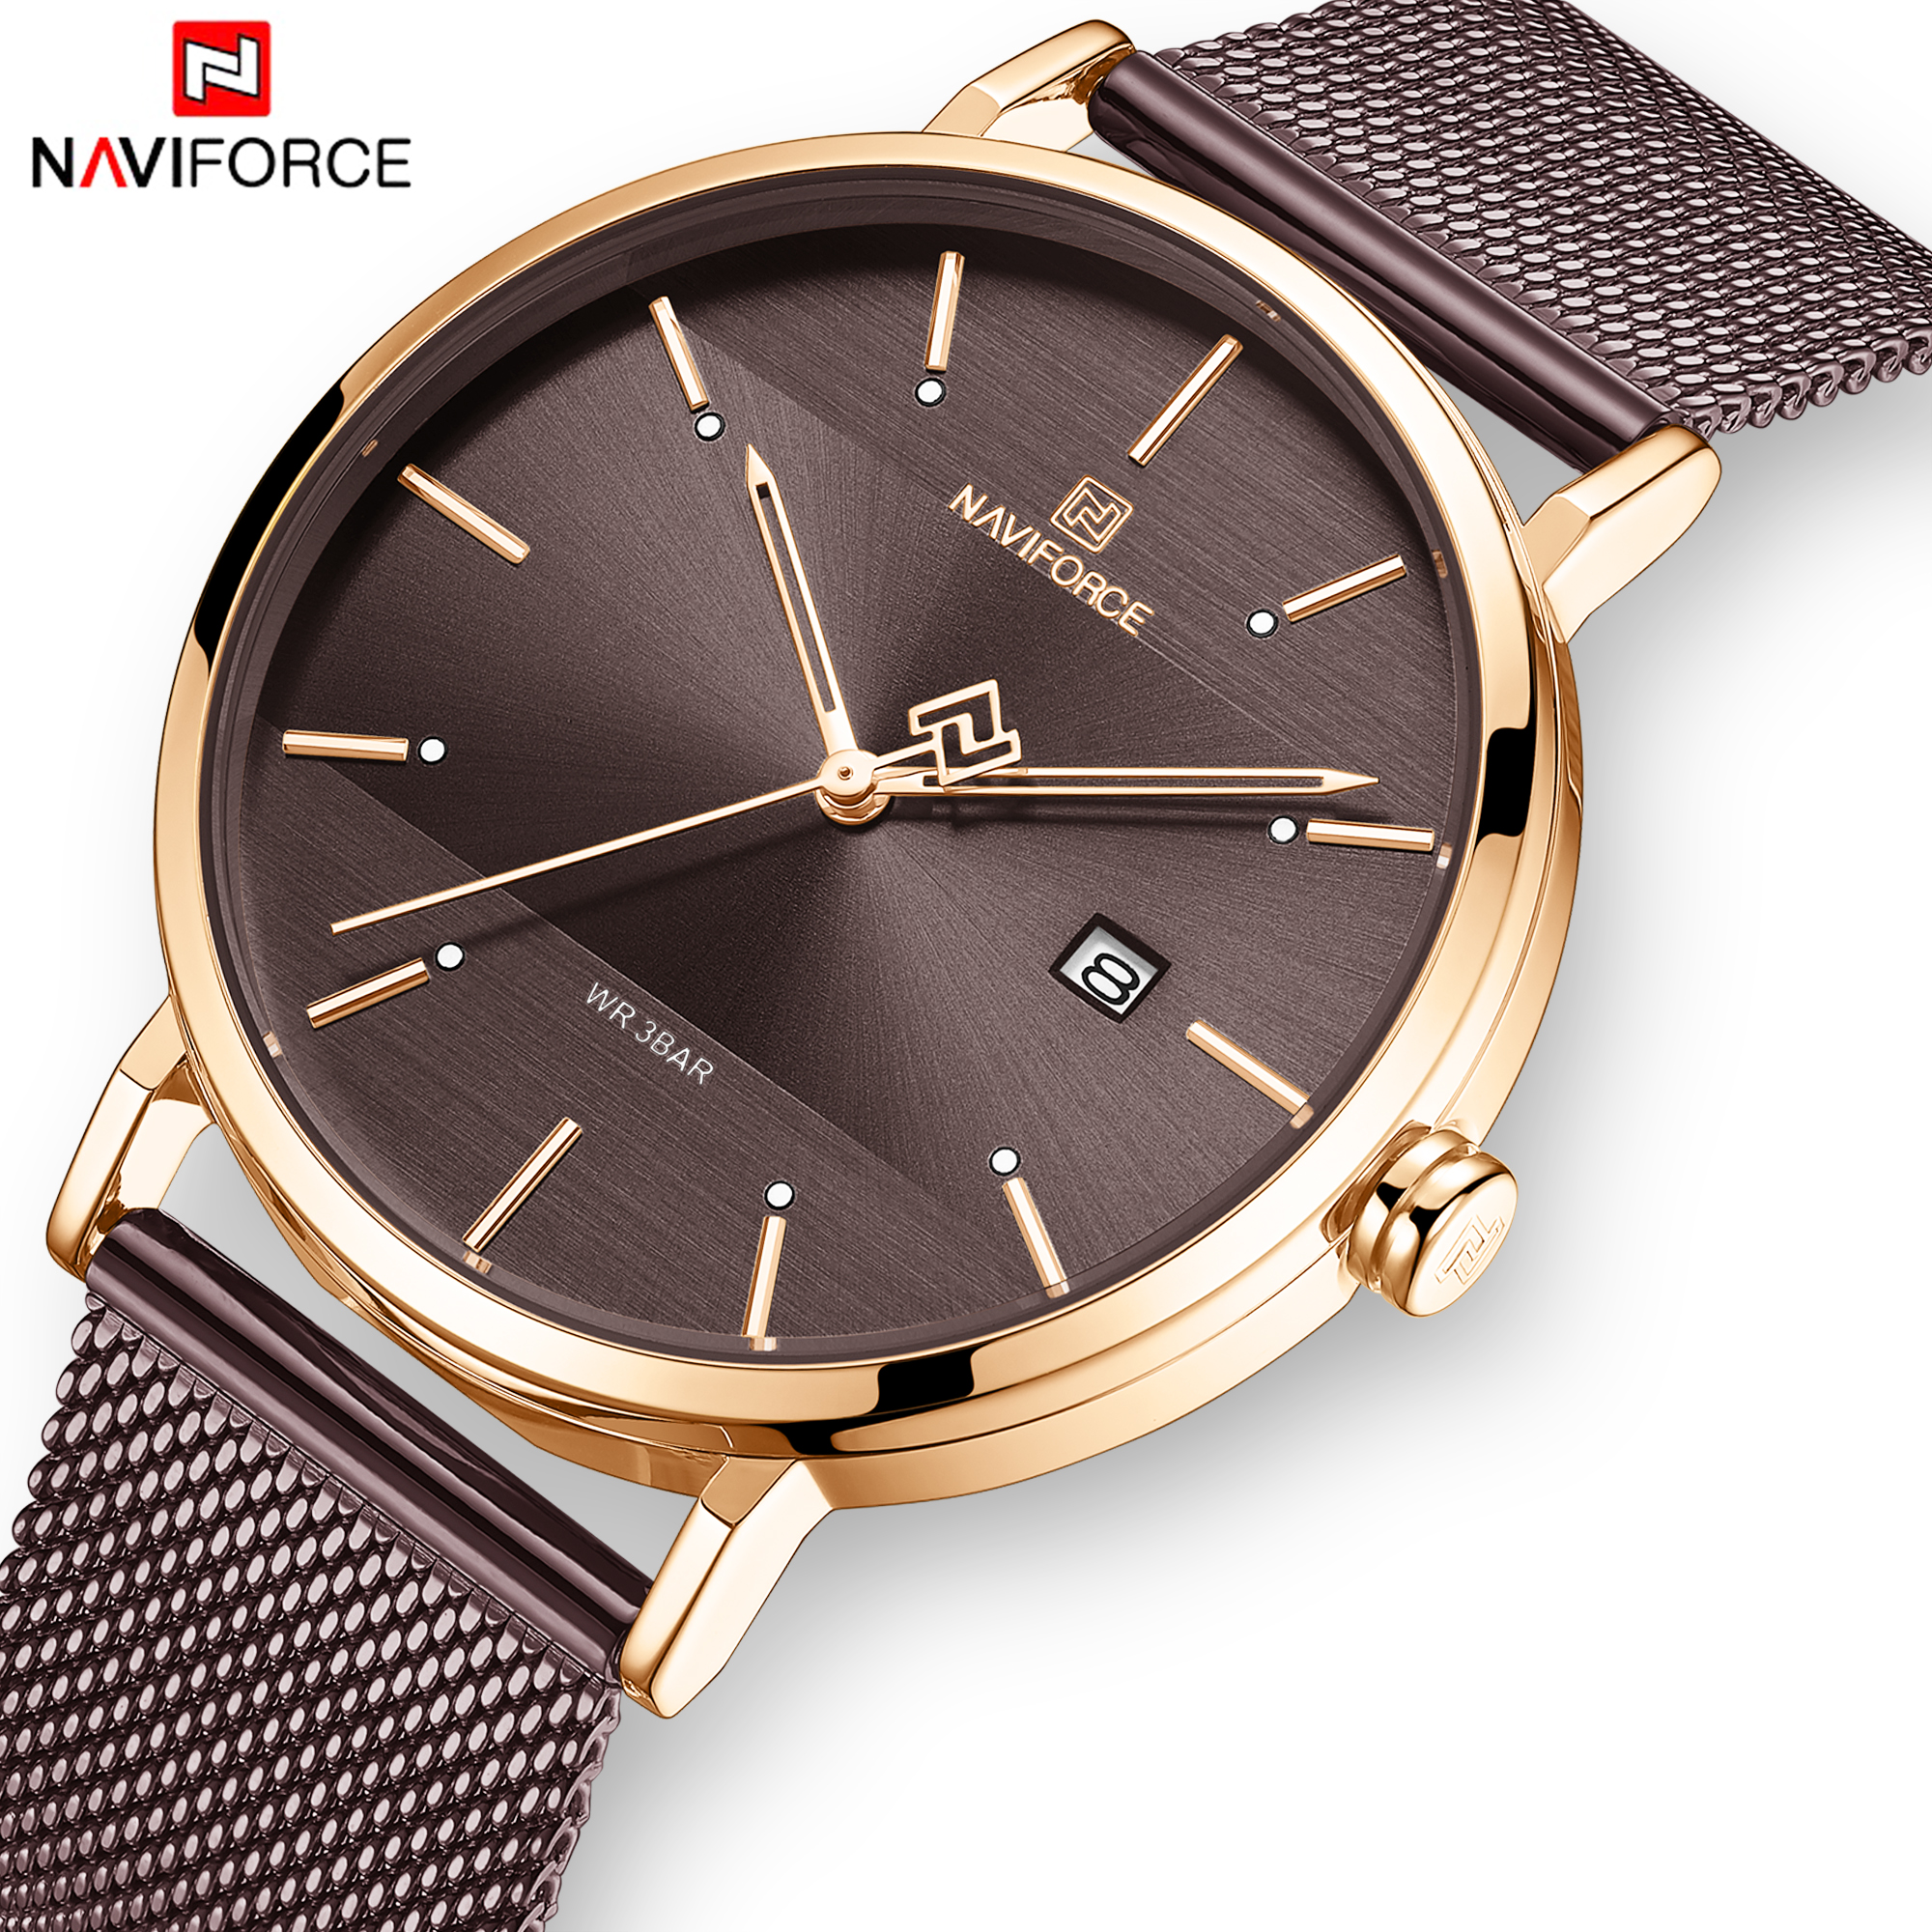 NAVIFORCE Lover's Watches For Men And Women Fashion Simple Quartz Wristwatch Waterproof Date Clock Luxury Couple Watch Gift 2019